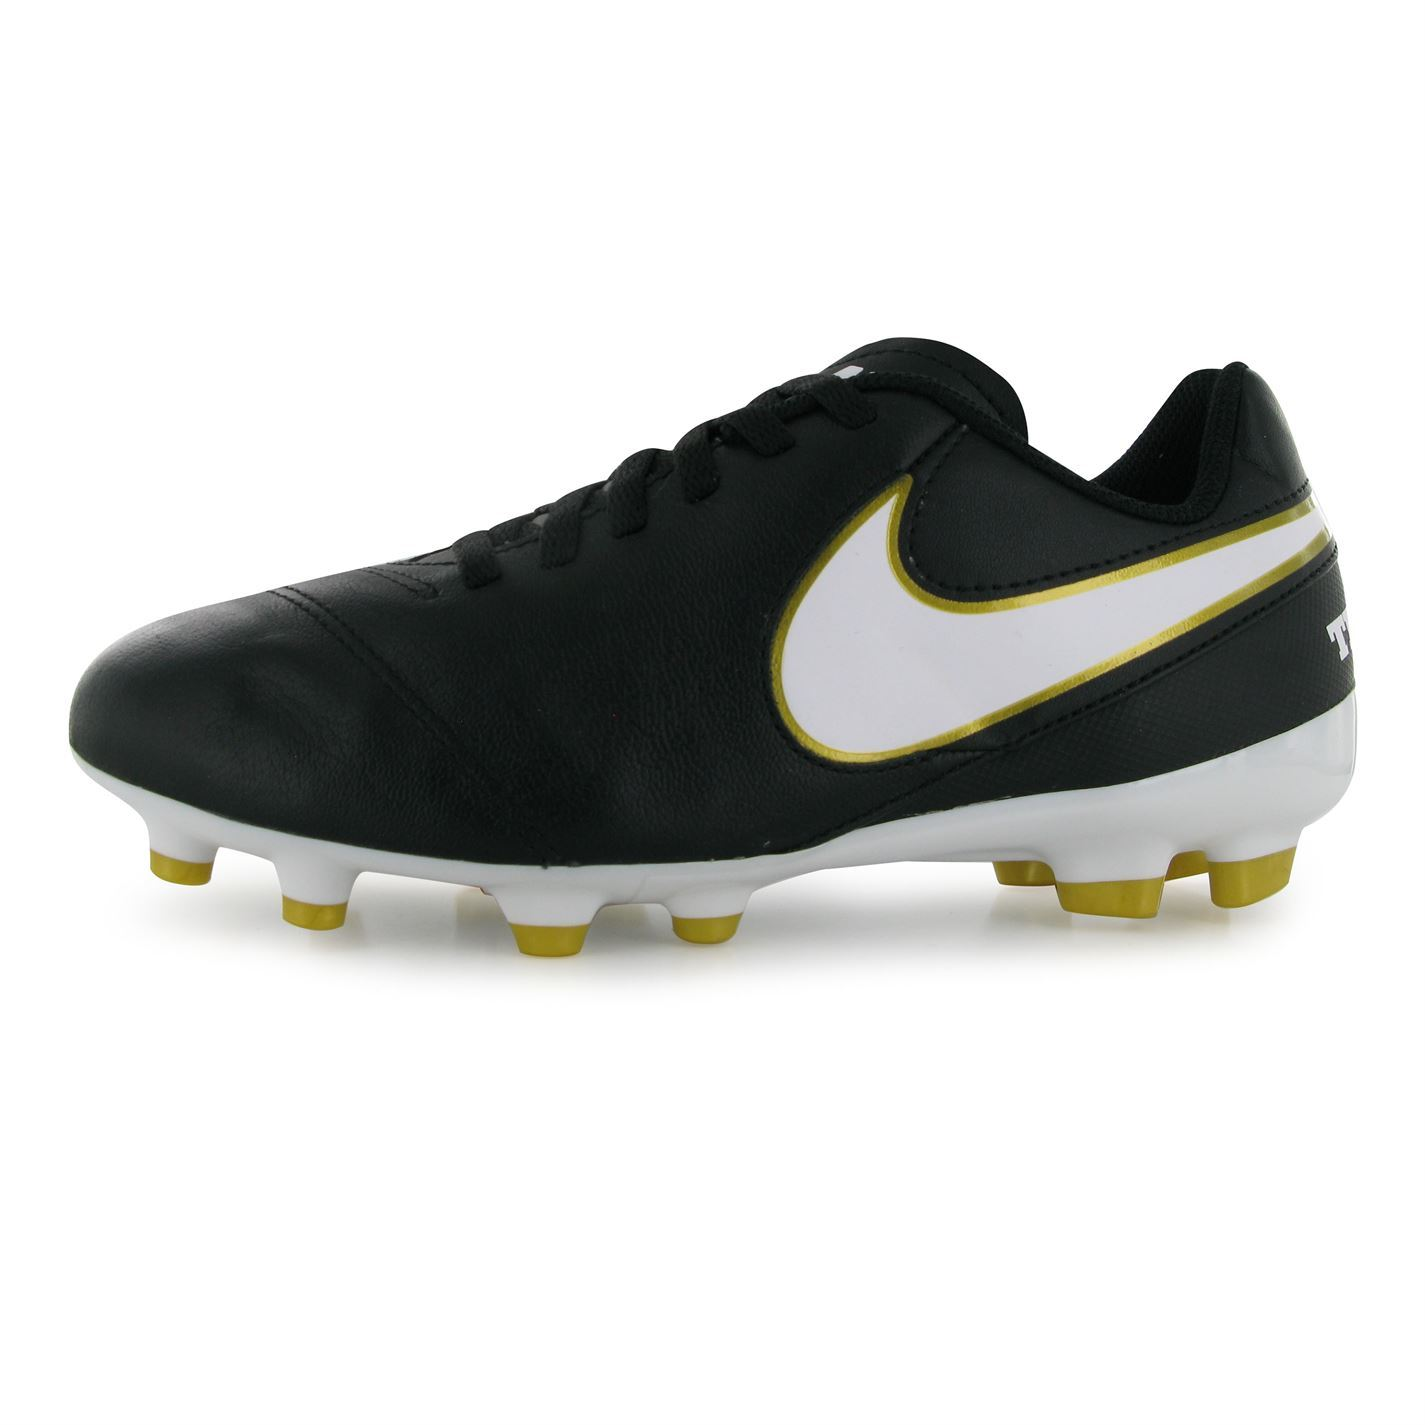 5f4c81f60 Nike Tiempo Legend Firm Ground Football Boots Juniors Soccer Shoes Black  White